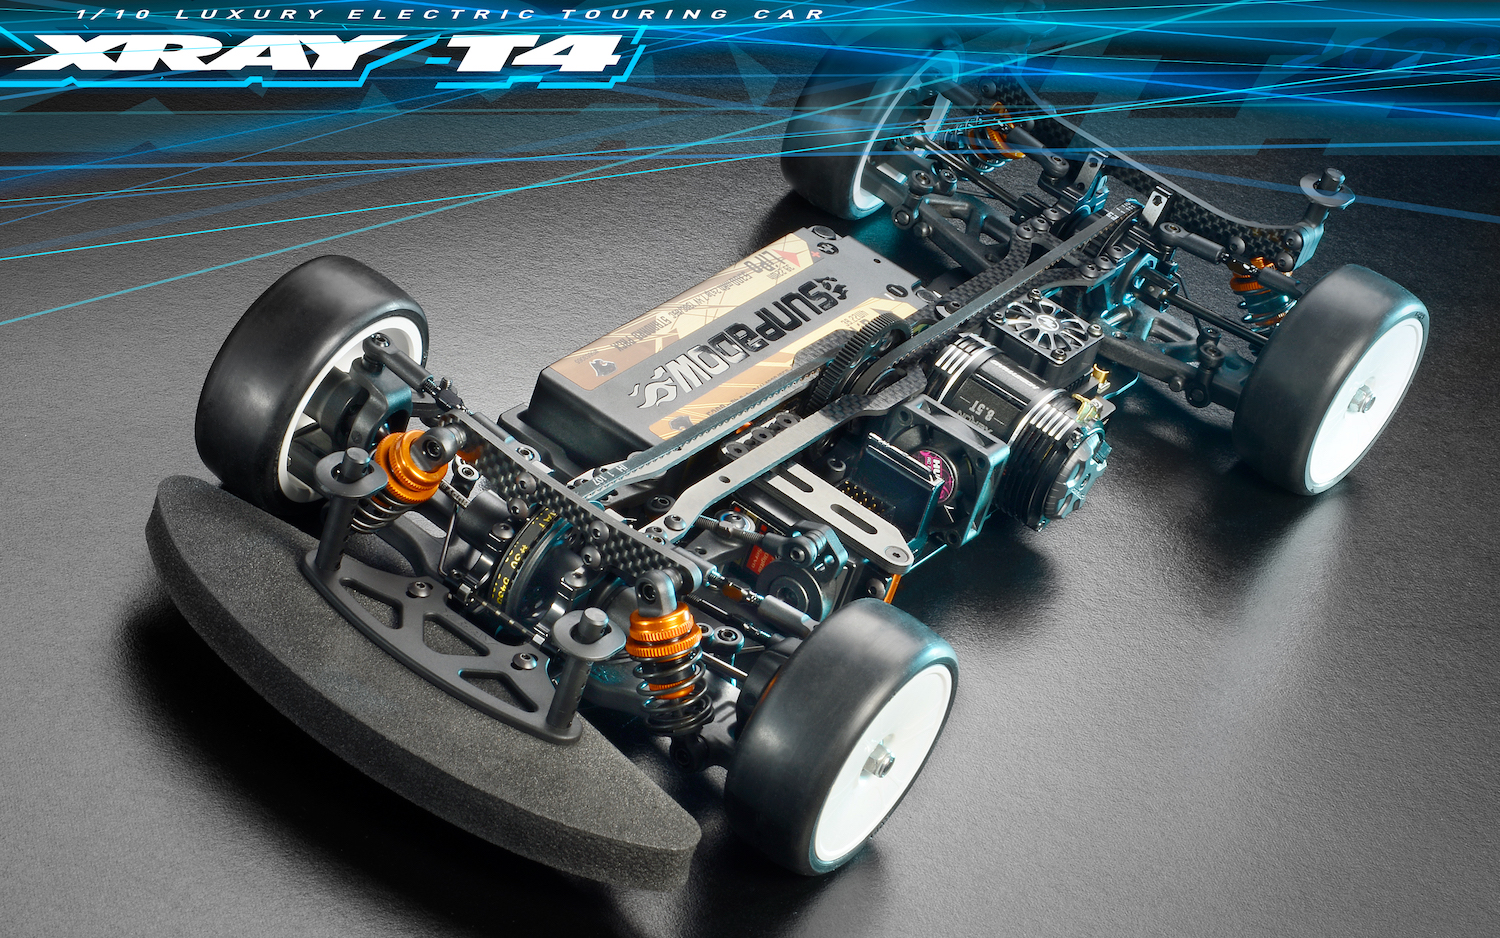 XRAY T4 2020 Specs 1/10 Luxury Electric Touring Car - Alu Edition + FREE XRAY T-SHIRT 300027